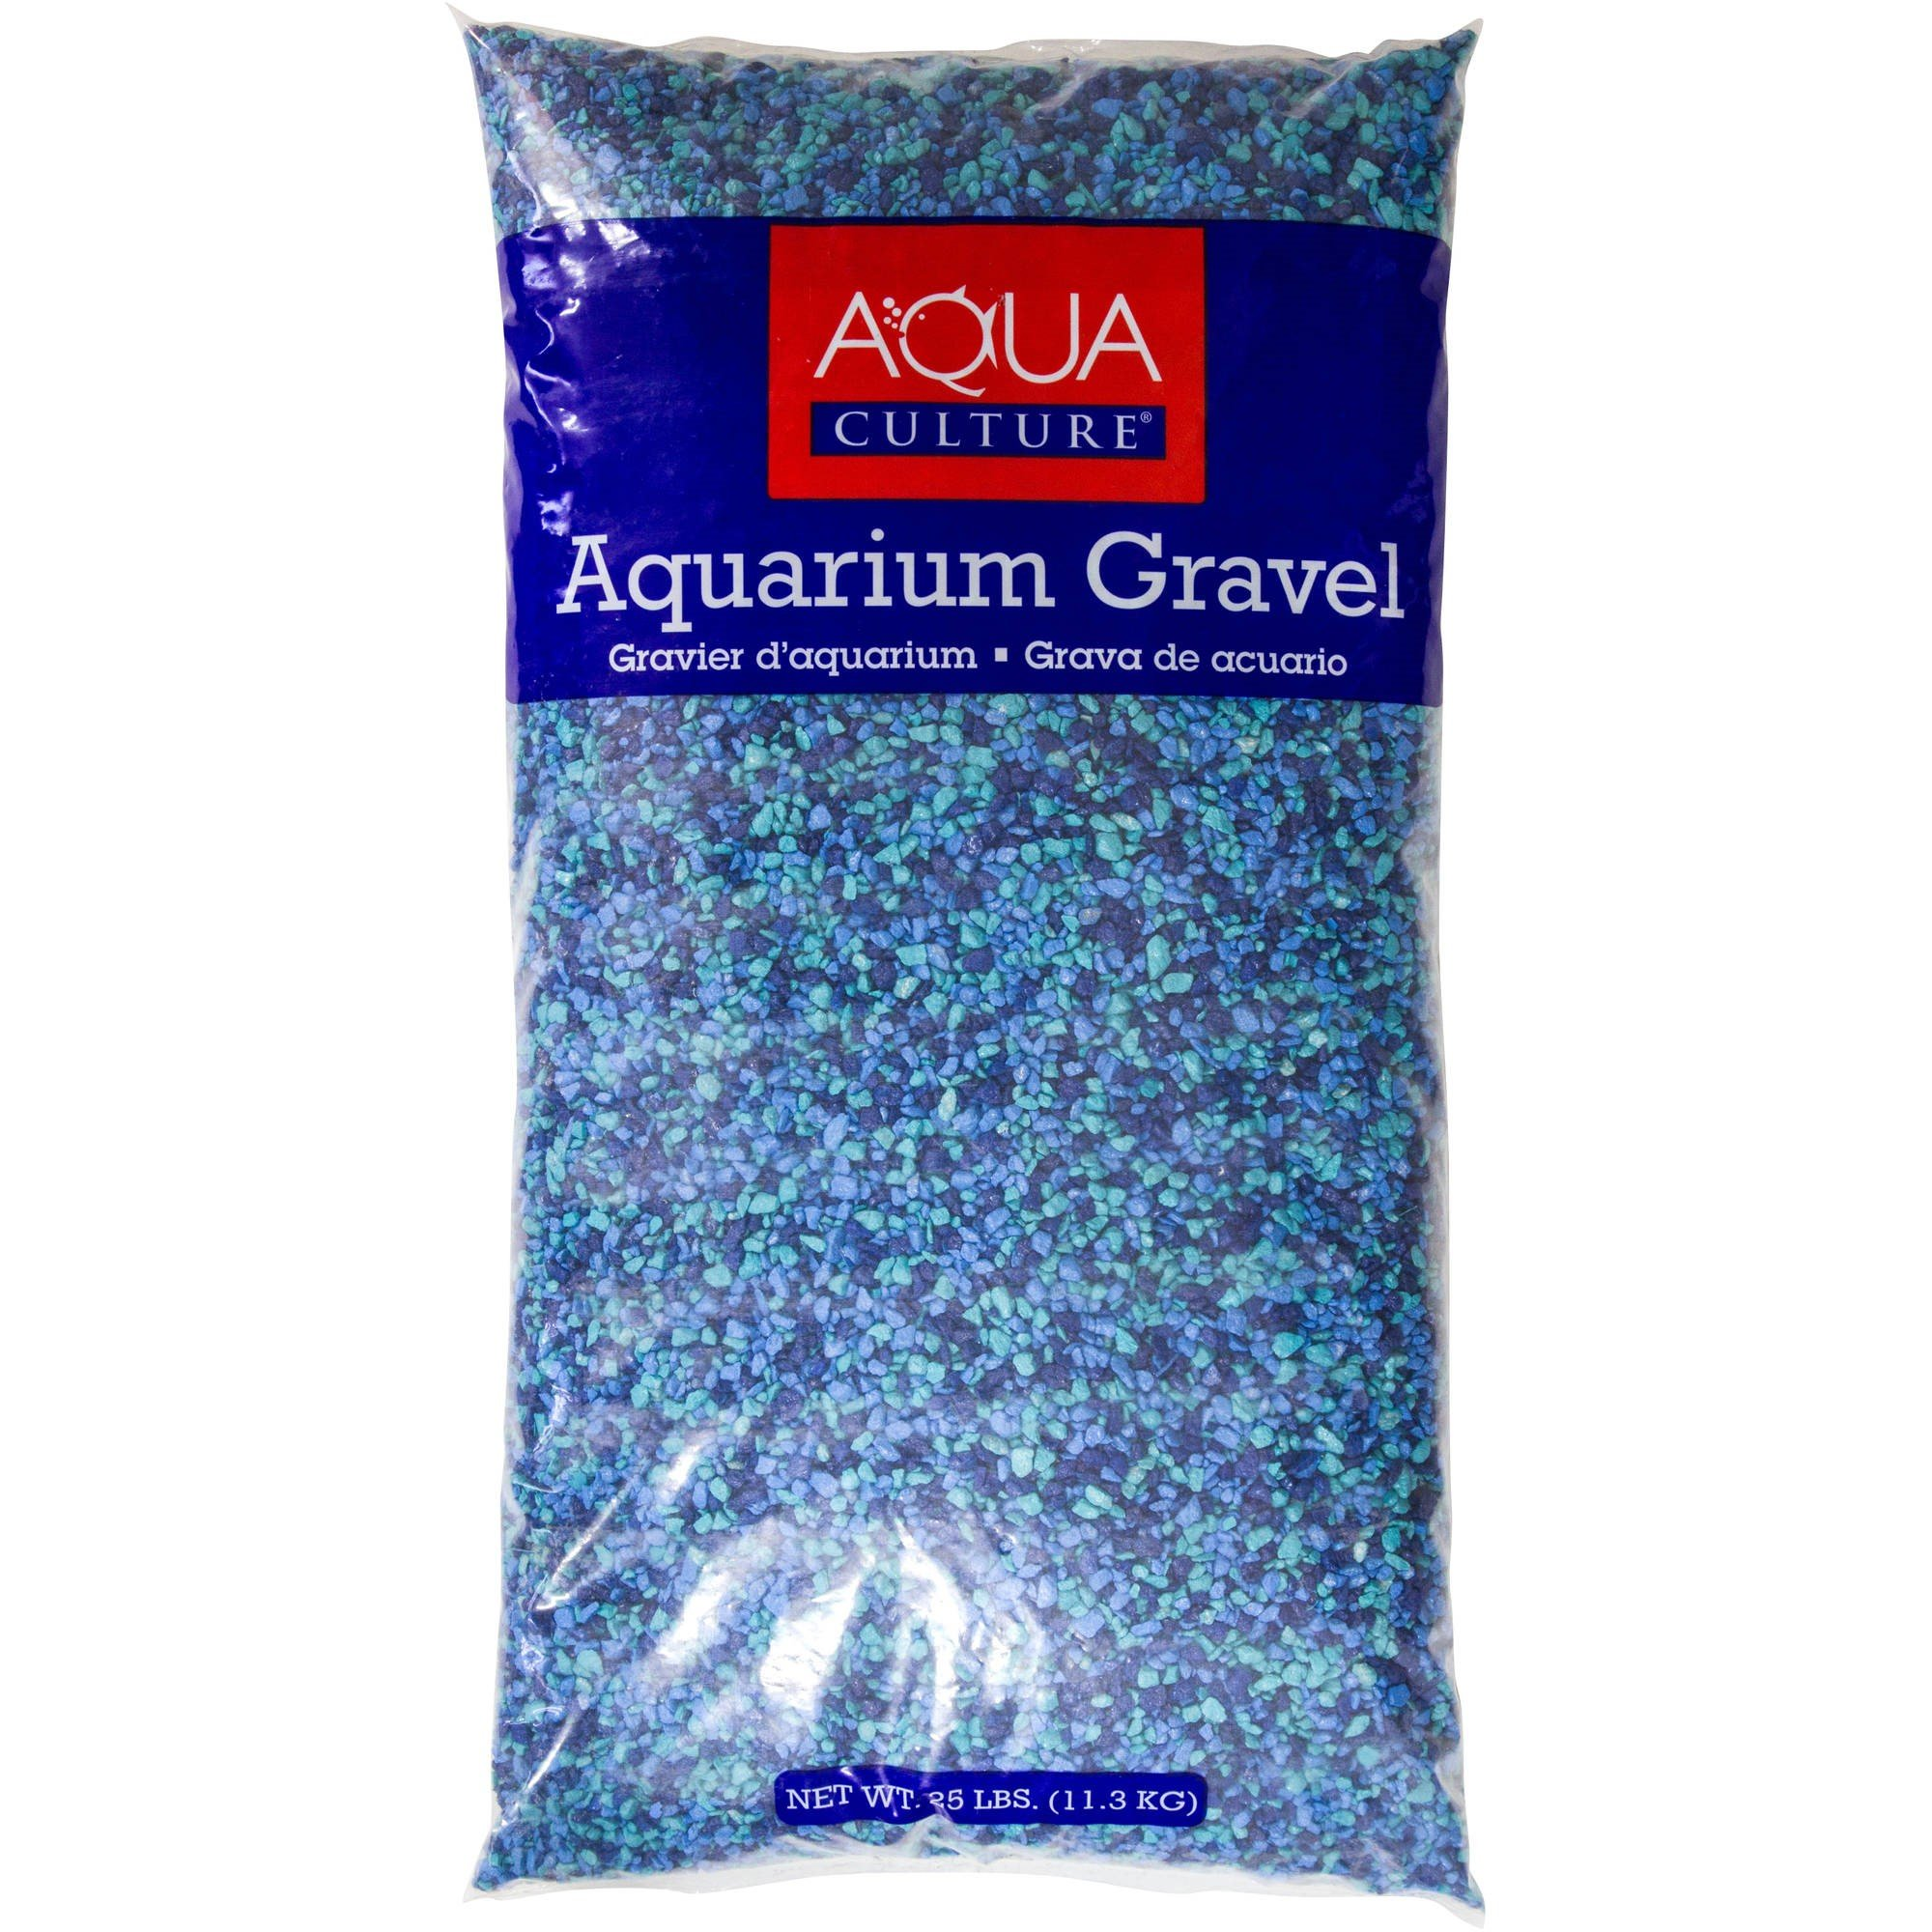 Aqua Culture Caribbean Aquarium Gravel, 25 lb